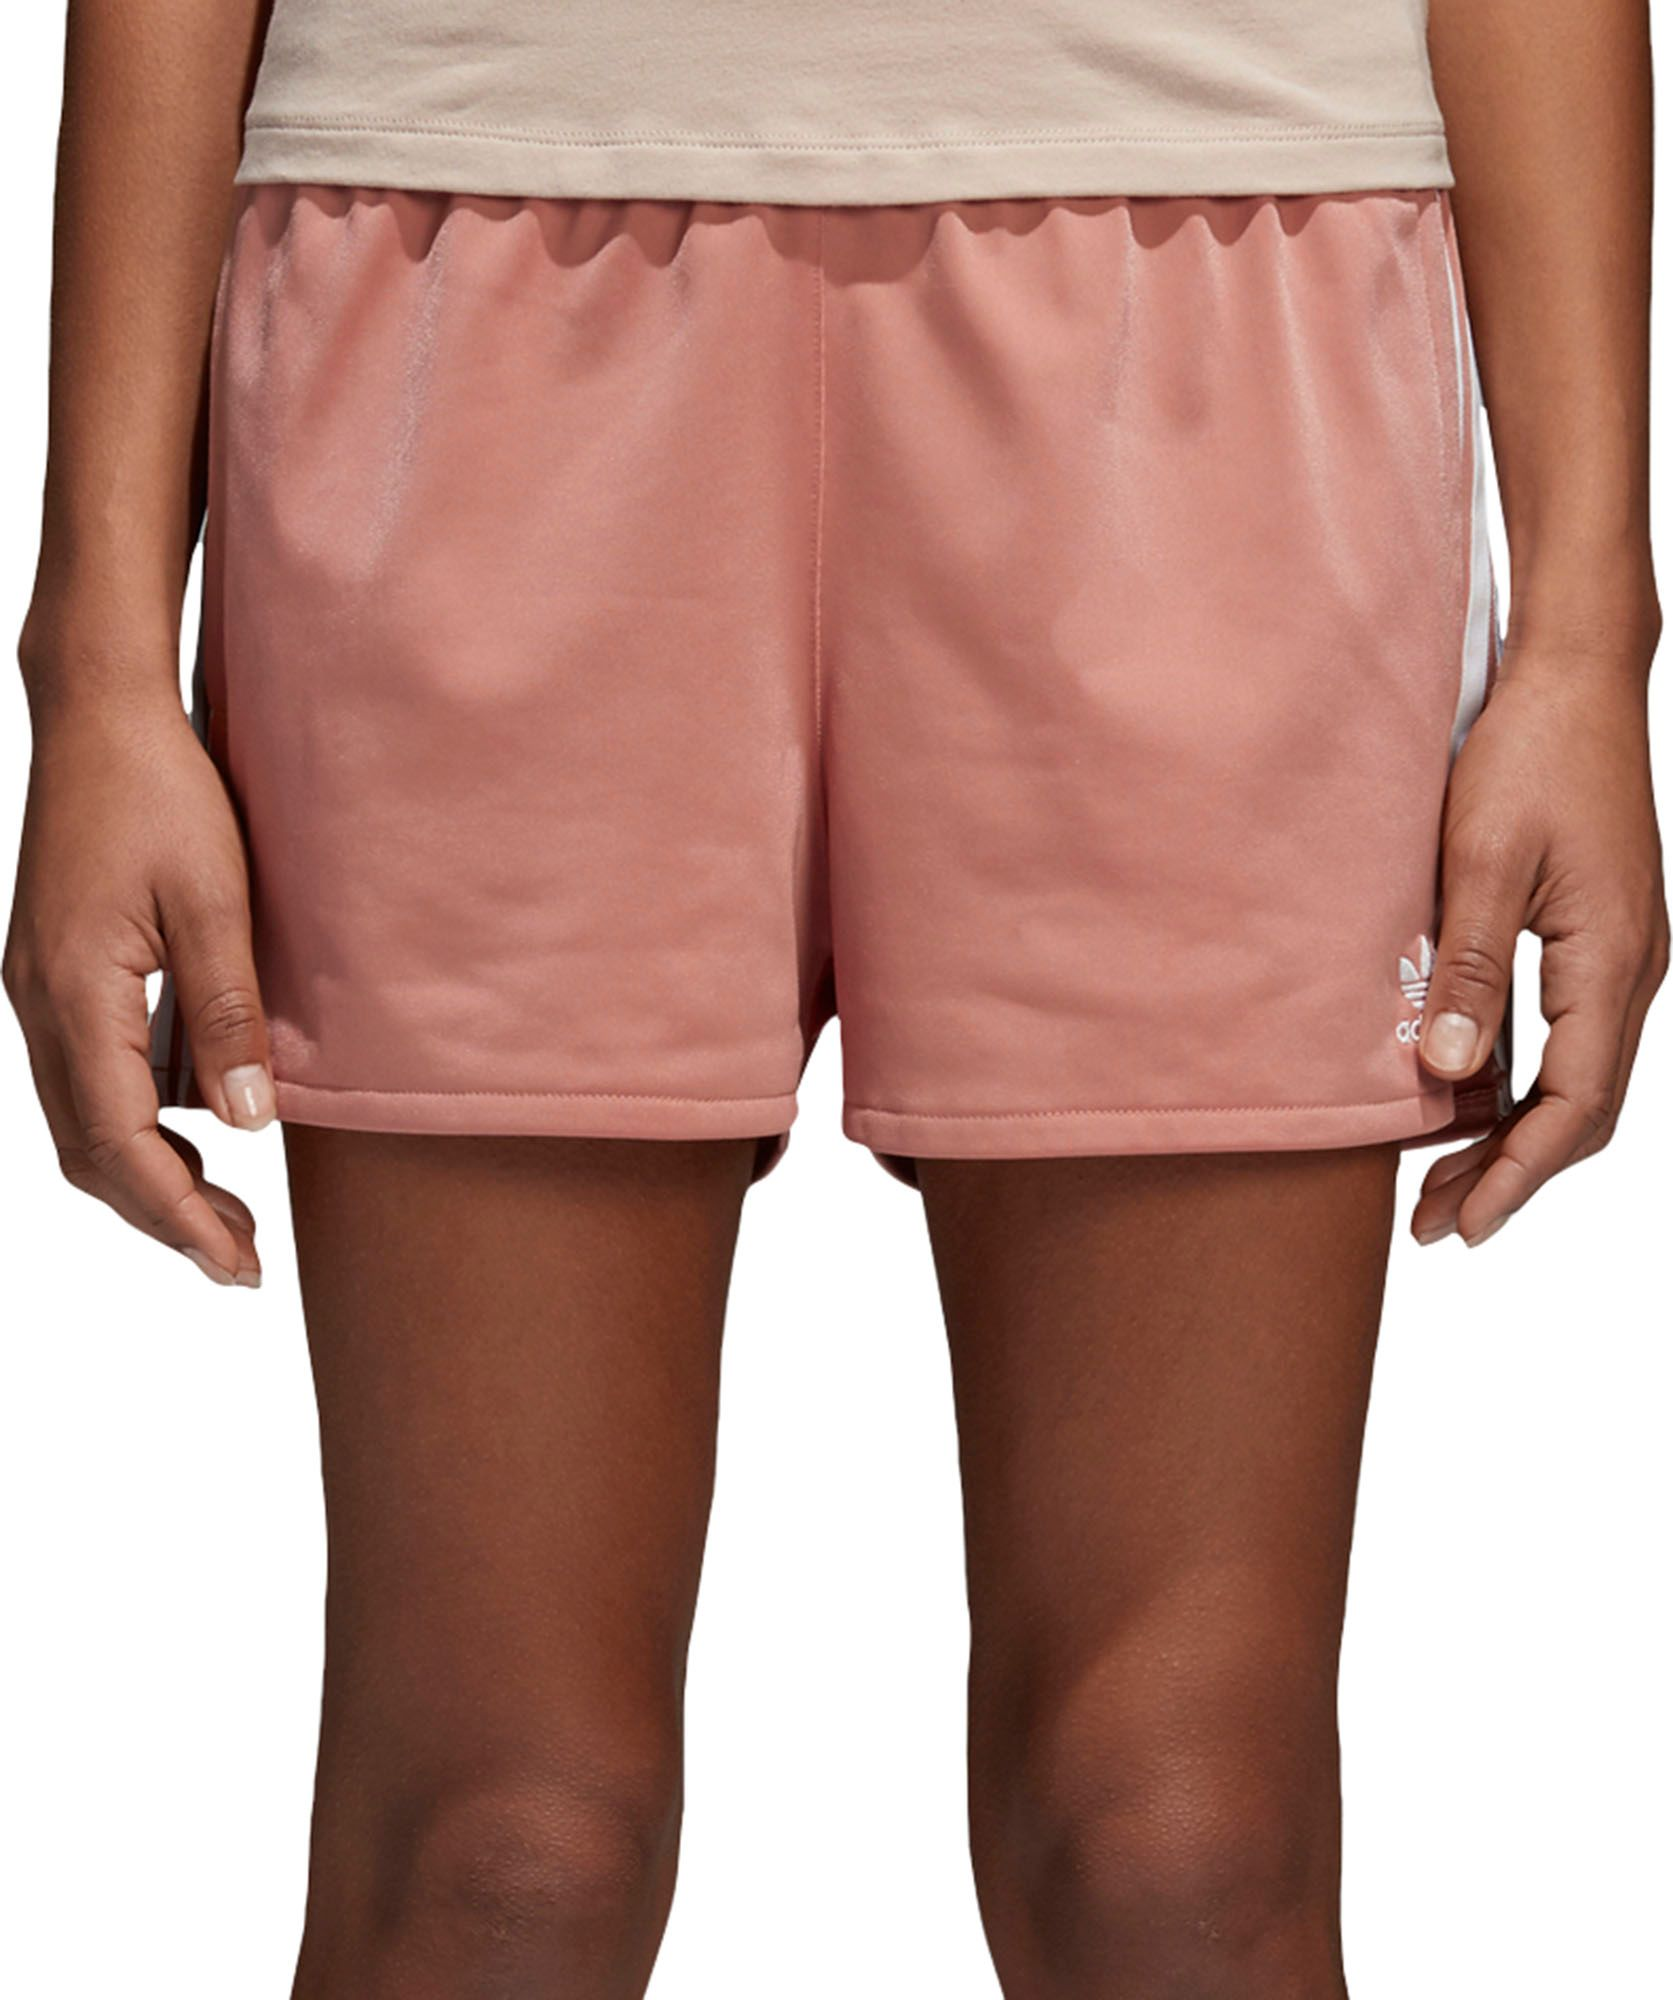 Adidas Originals Women's 3 Stripes Shorts by Adidas